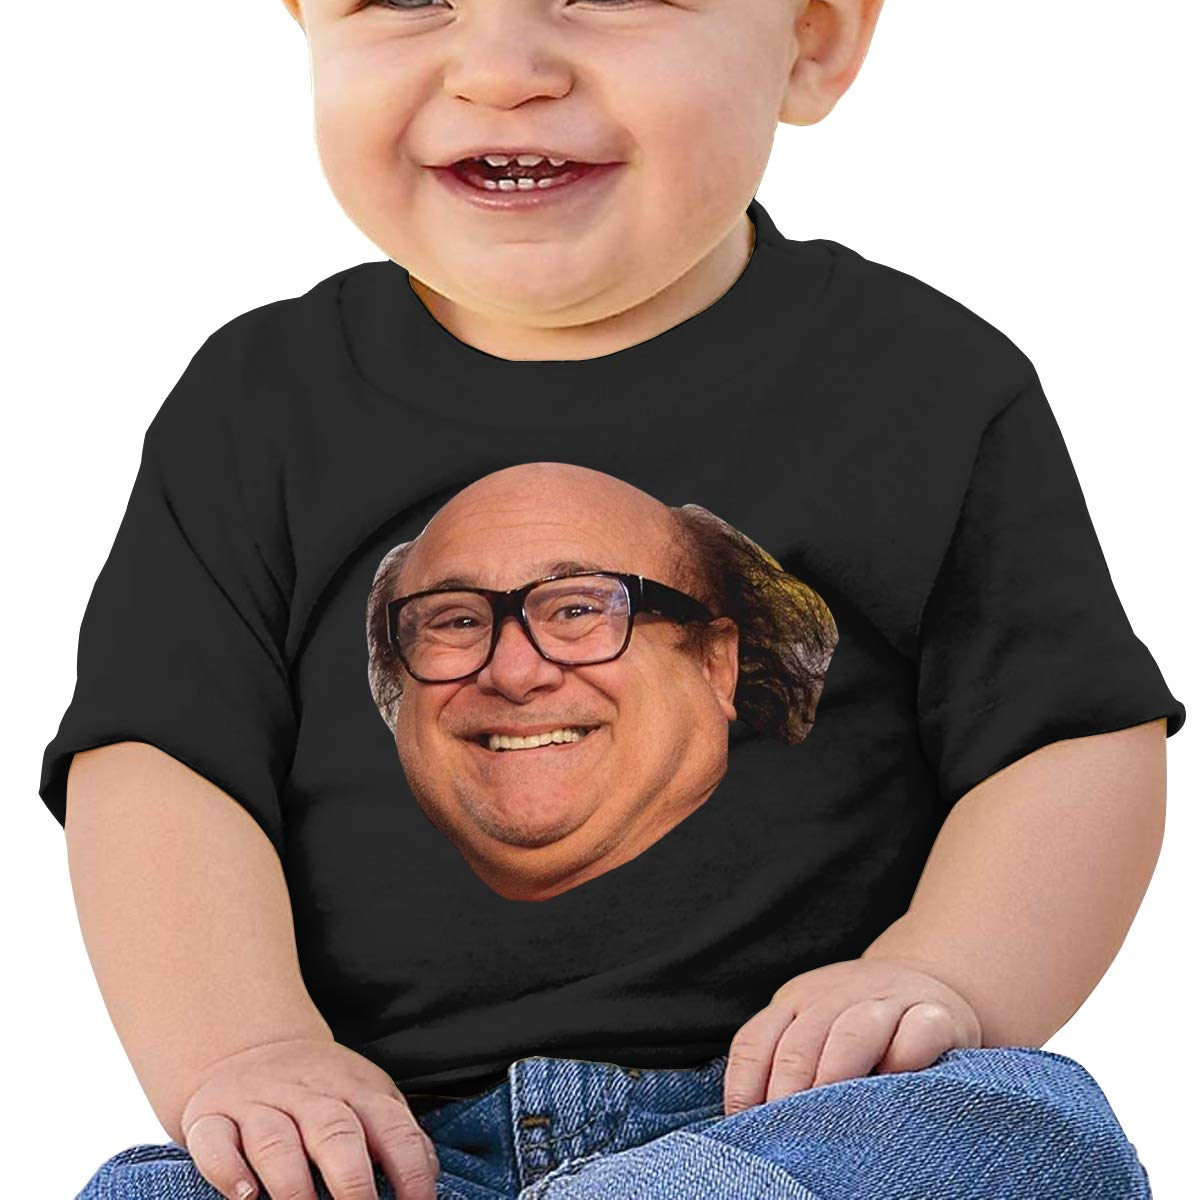 Baby Danny Devito Face Funny Always Sunny Shirt Childrens Cotton Tee